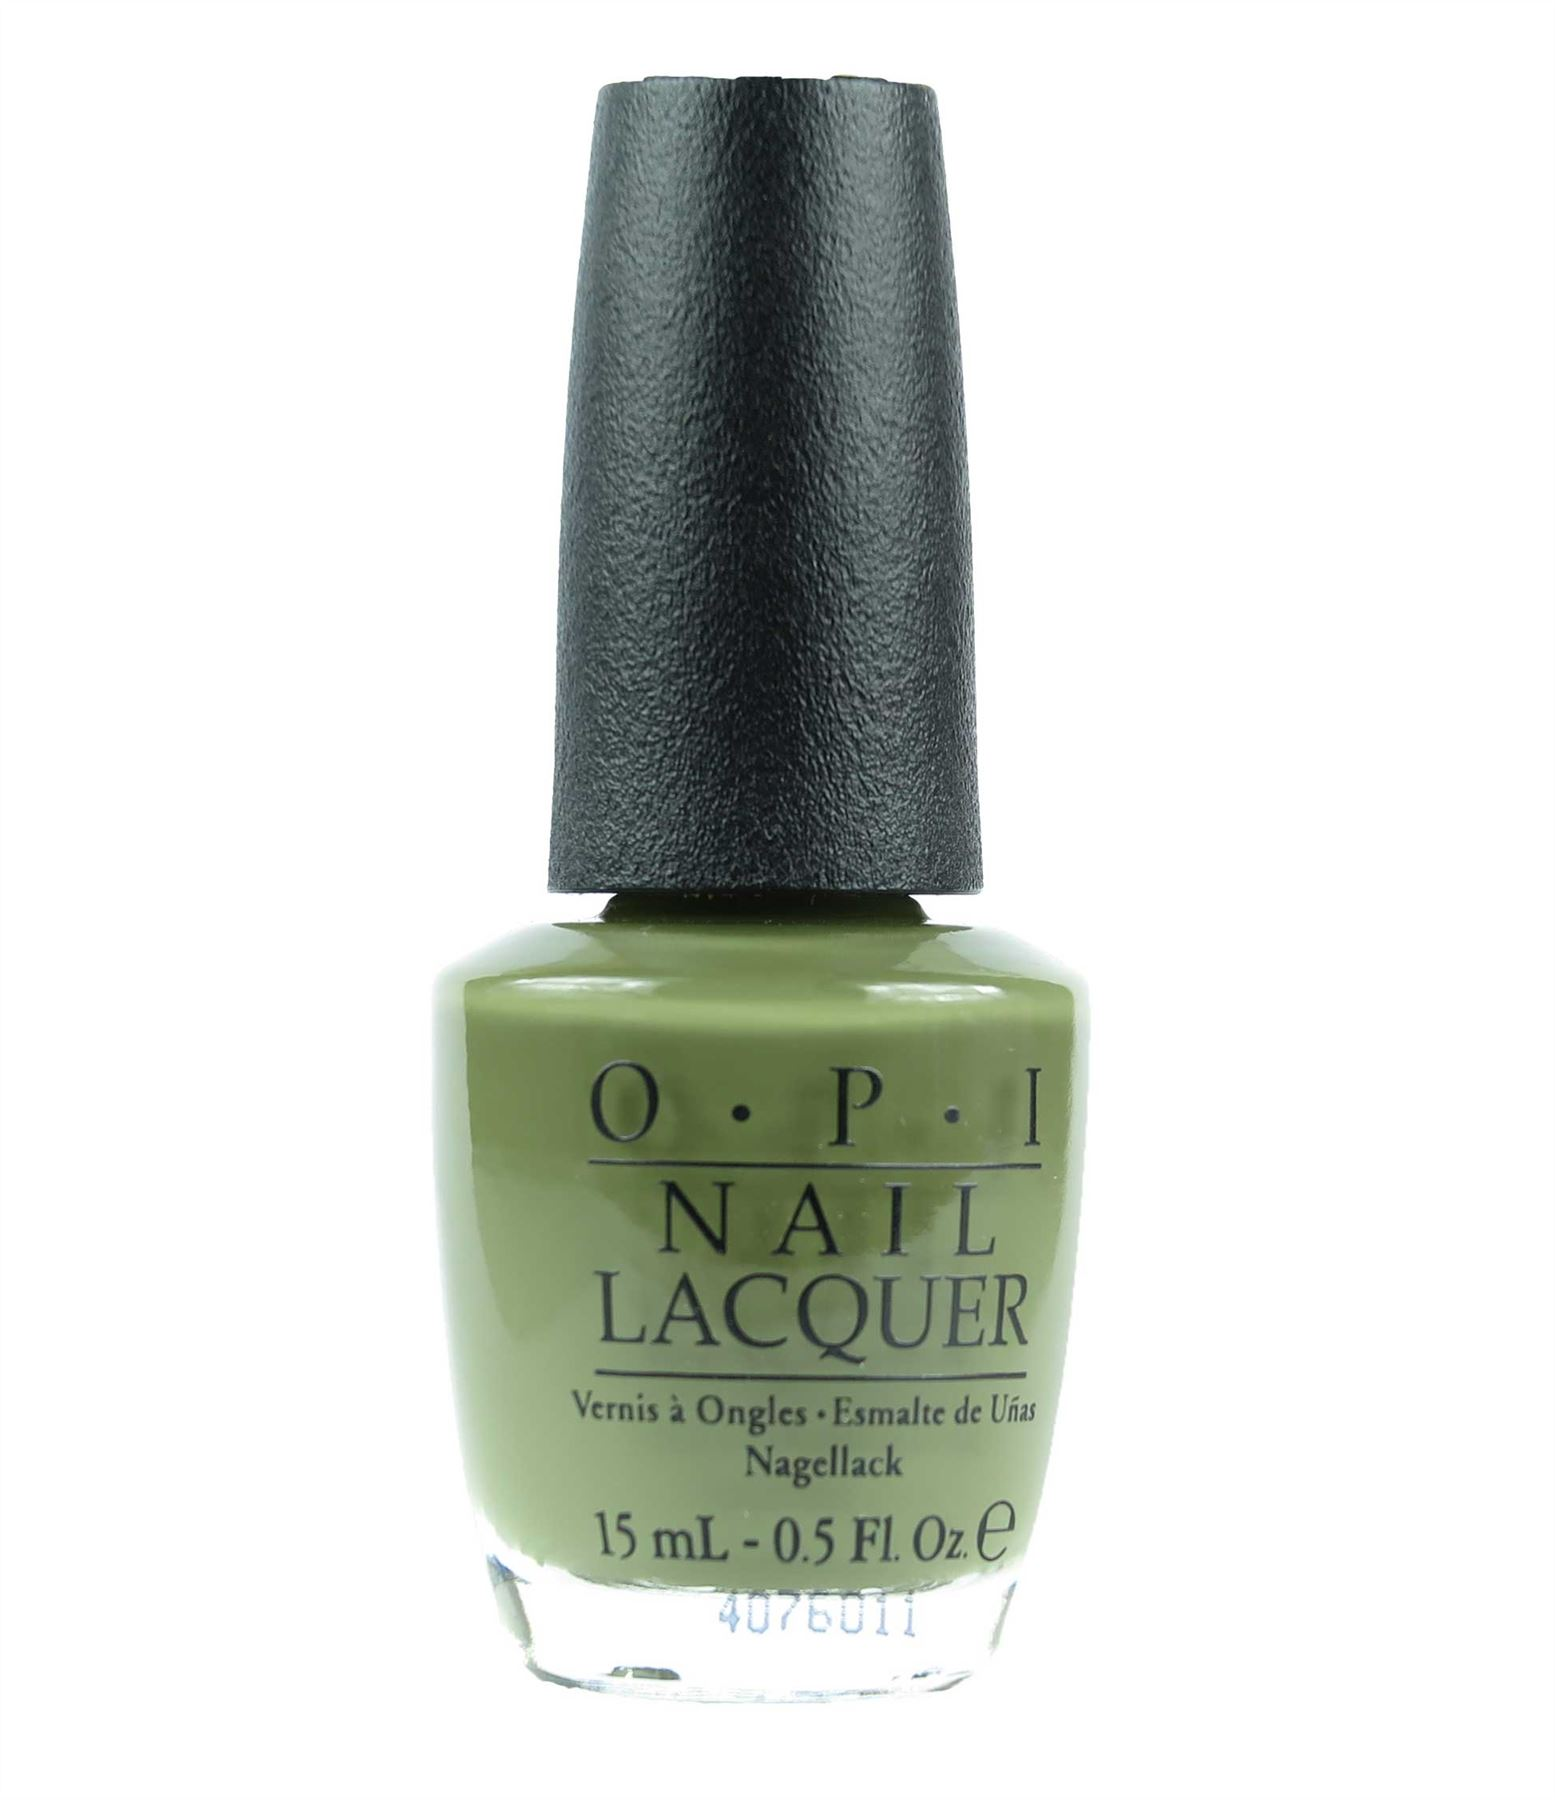 OPI Nails Lacquer - 37 Colours 15 ml - Original | eBay